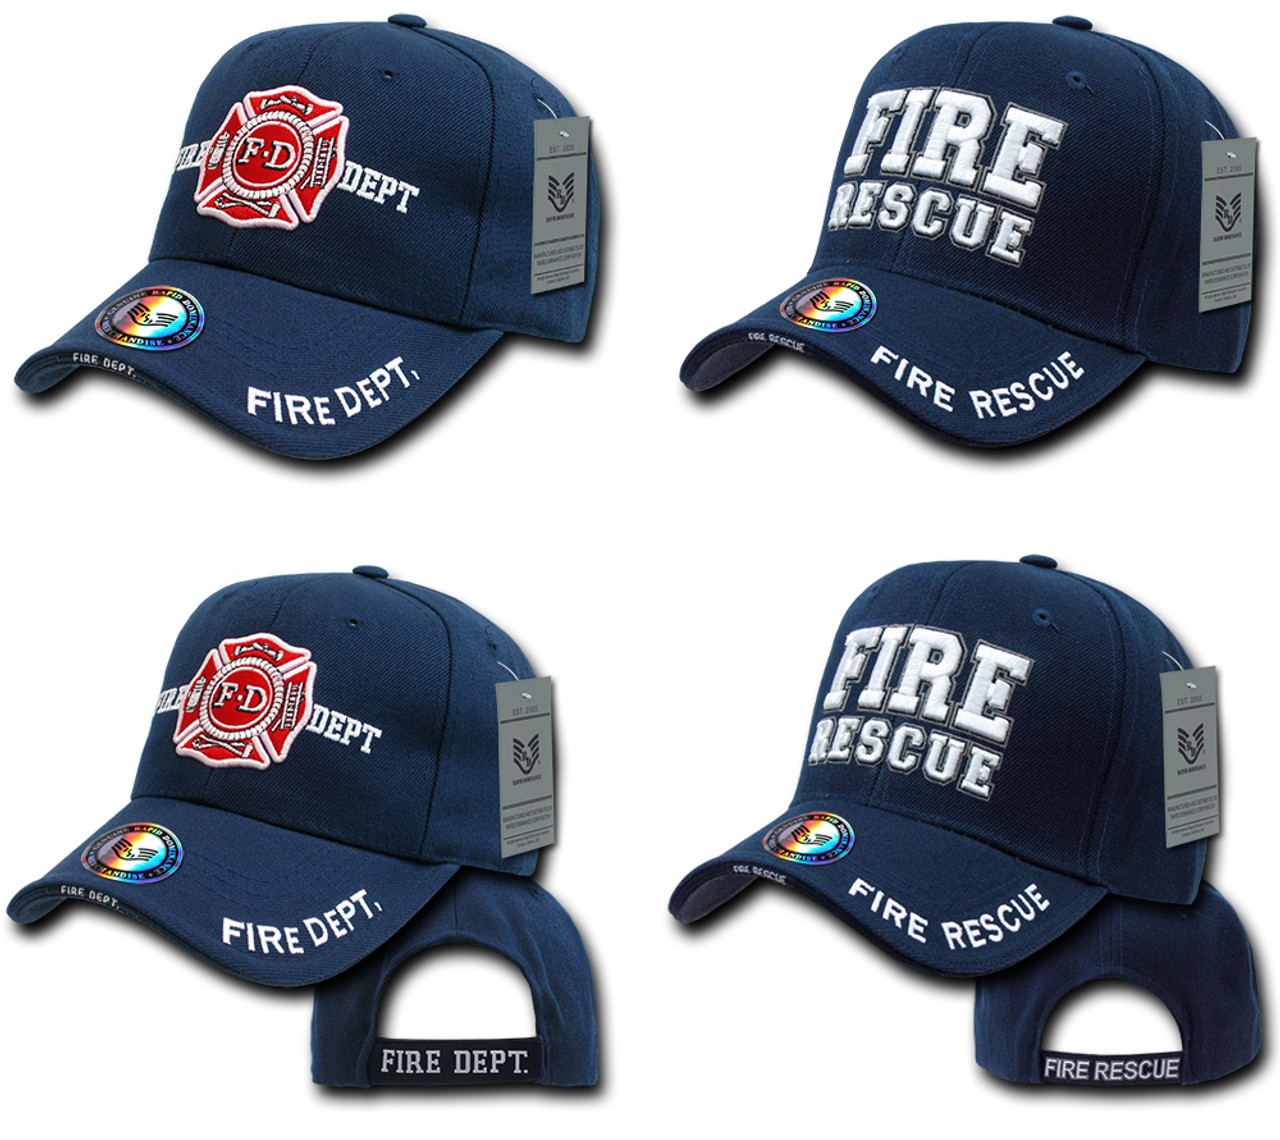 Fire Fighter Fire Dept. Fire Rescue Hat Baseball Cap (Your service is  Appreciated) 90cb1acadcc